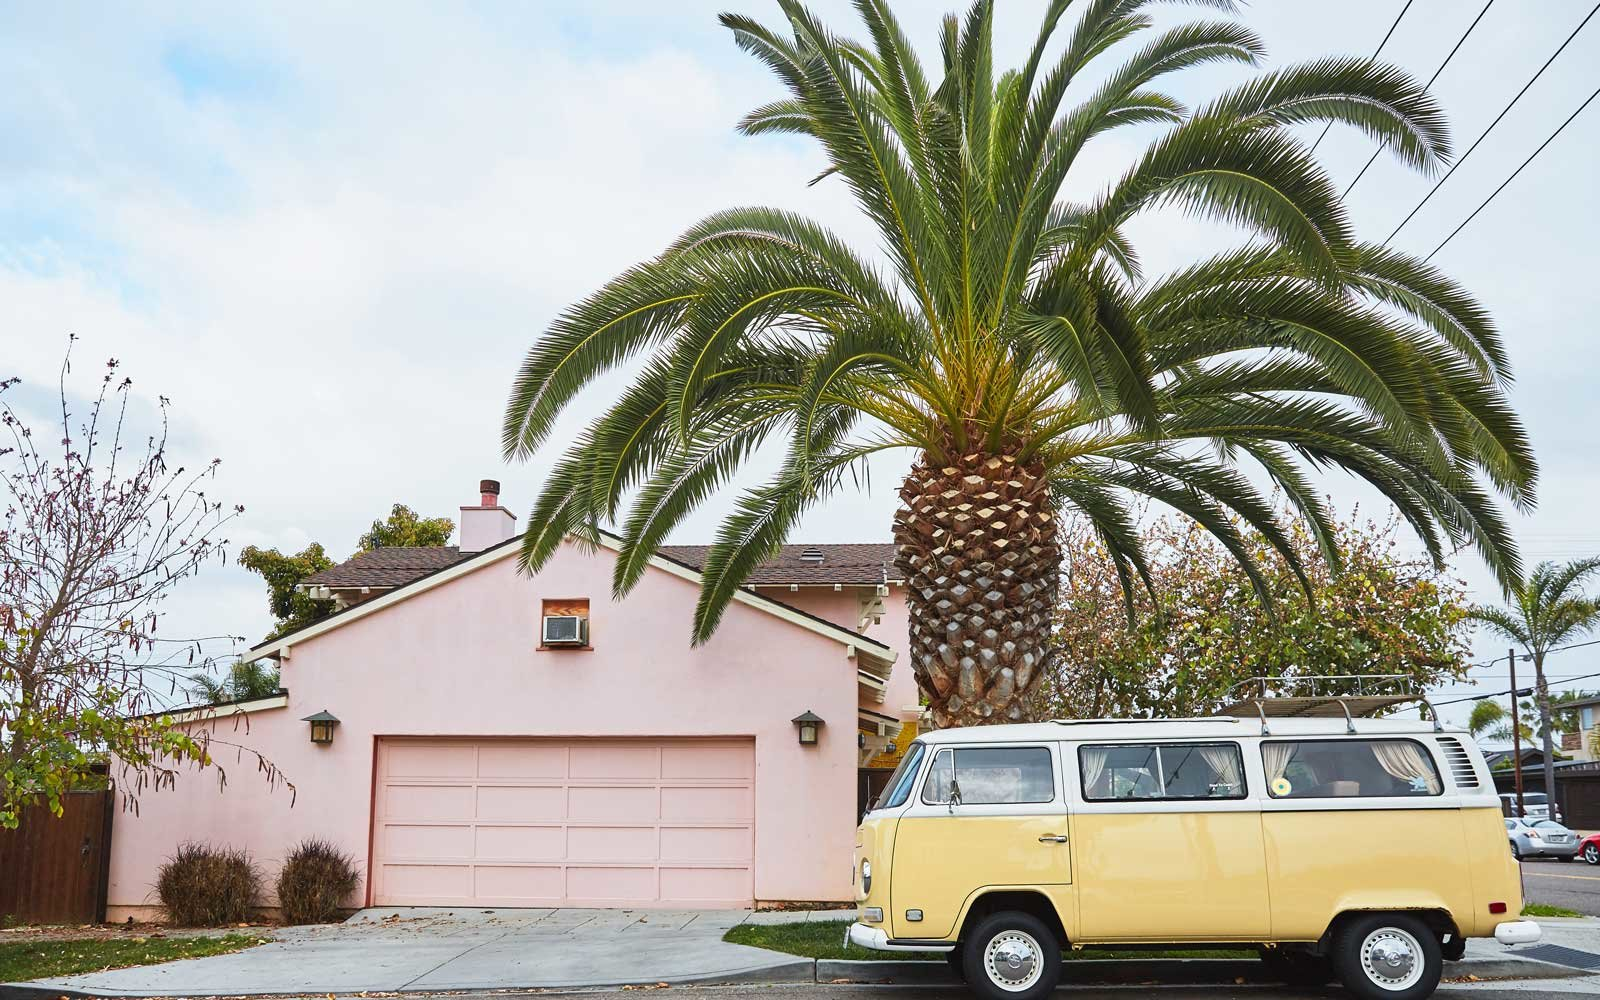 A colorful scene can be seen on the streets of Carlsbad.